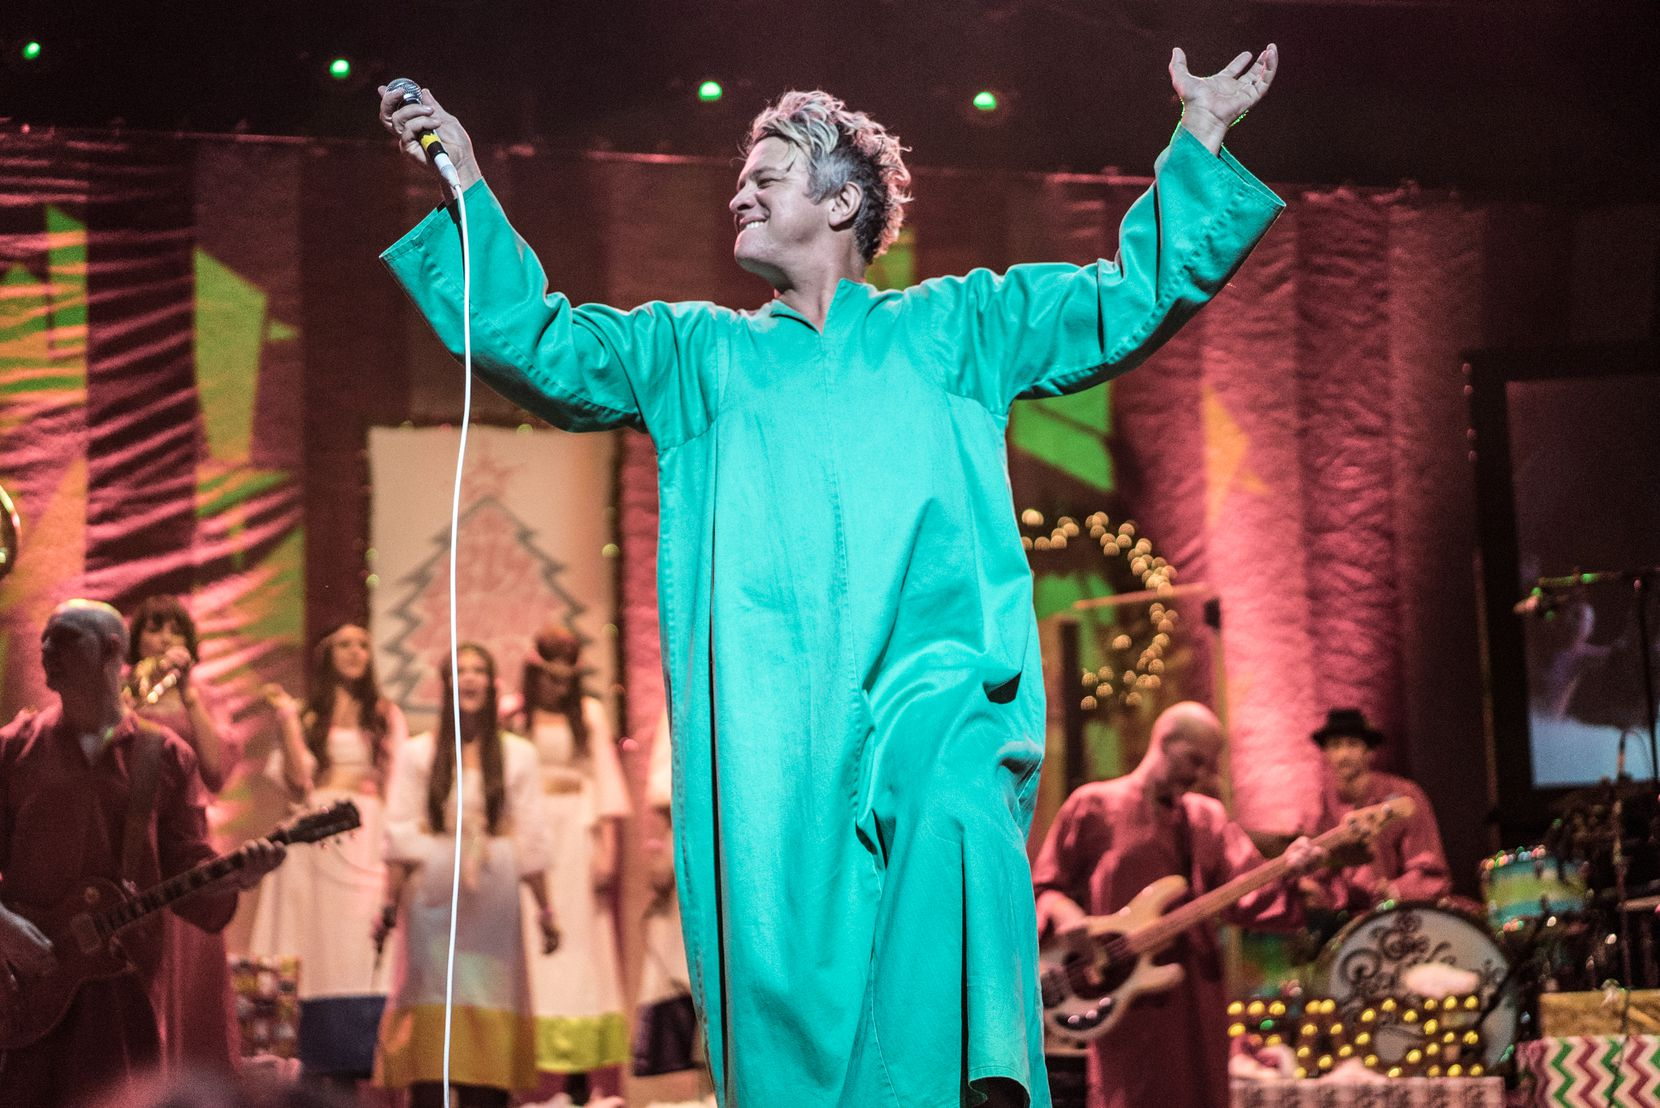 Tim DeLaughter, lead singer of the Polyphonic Spree, performs at the Majestic Theatre as part of the band's 2016 Holiday Extravaganza.